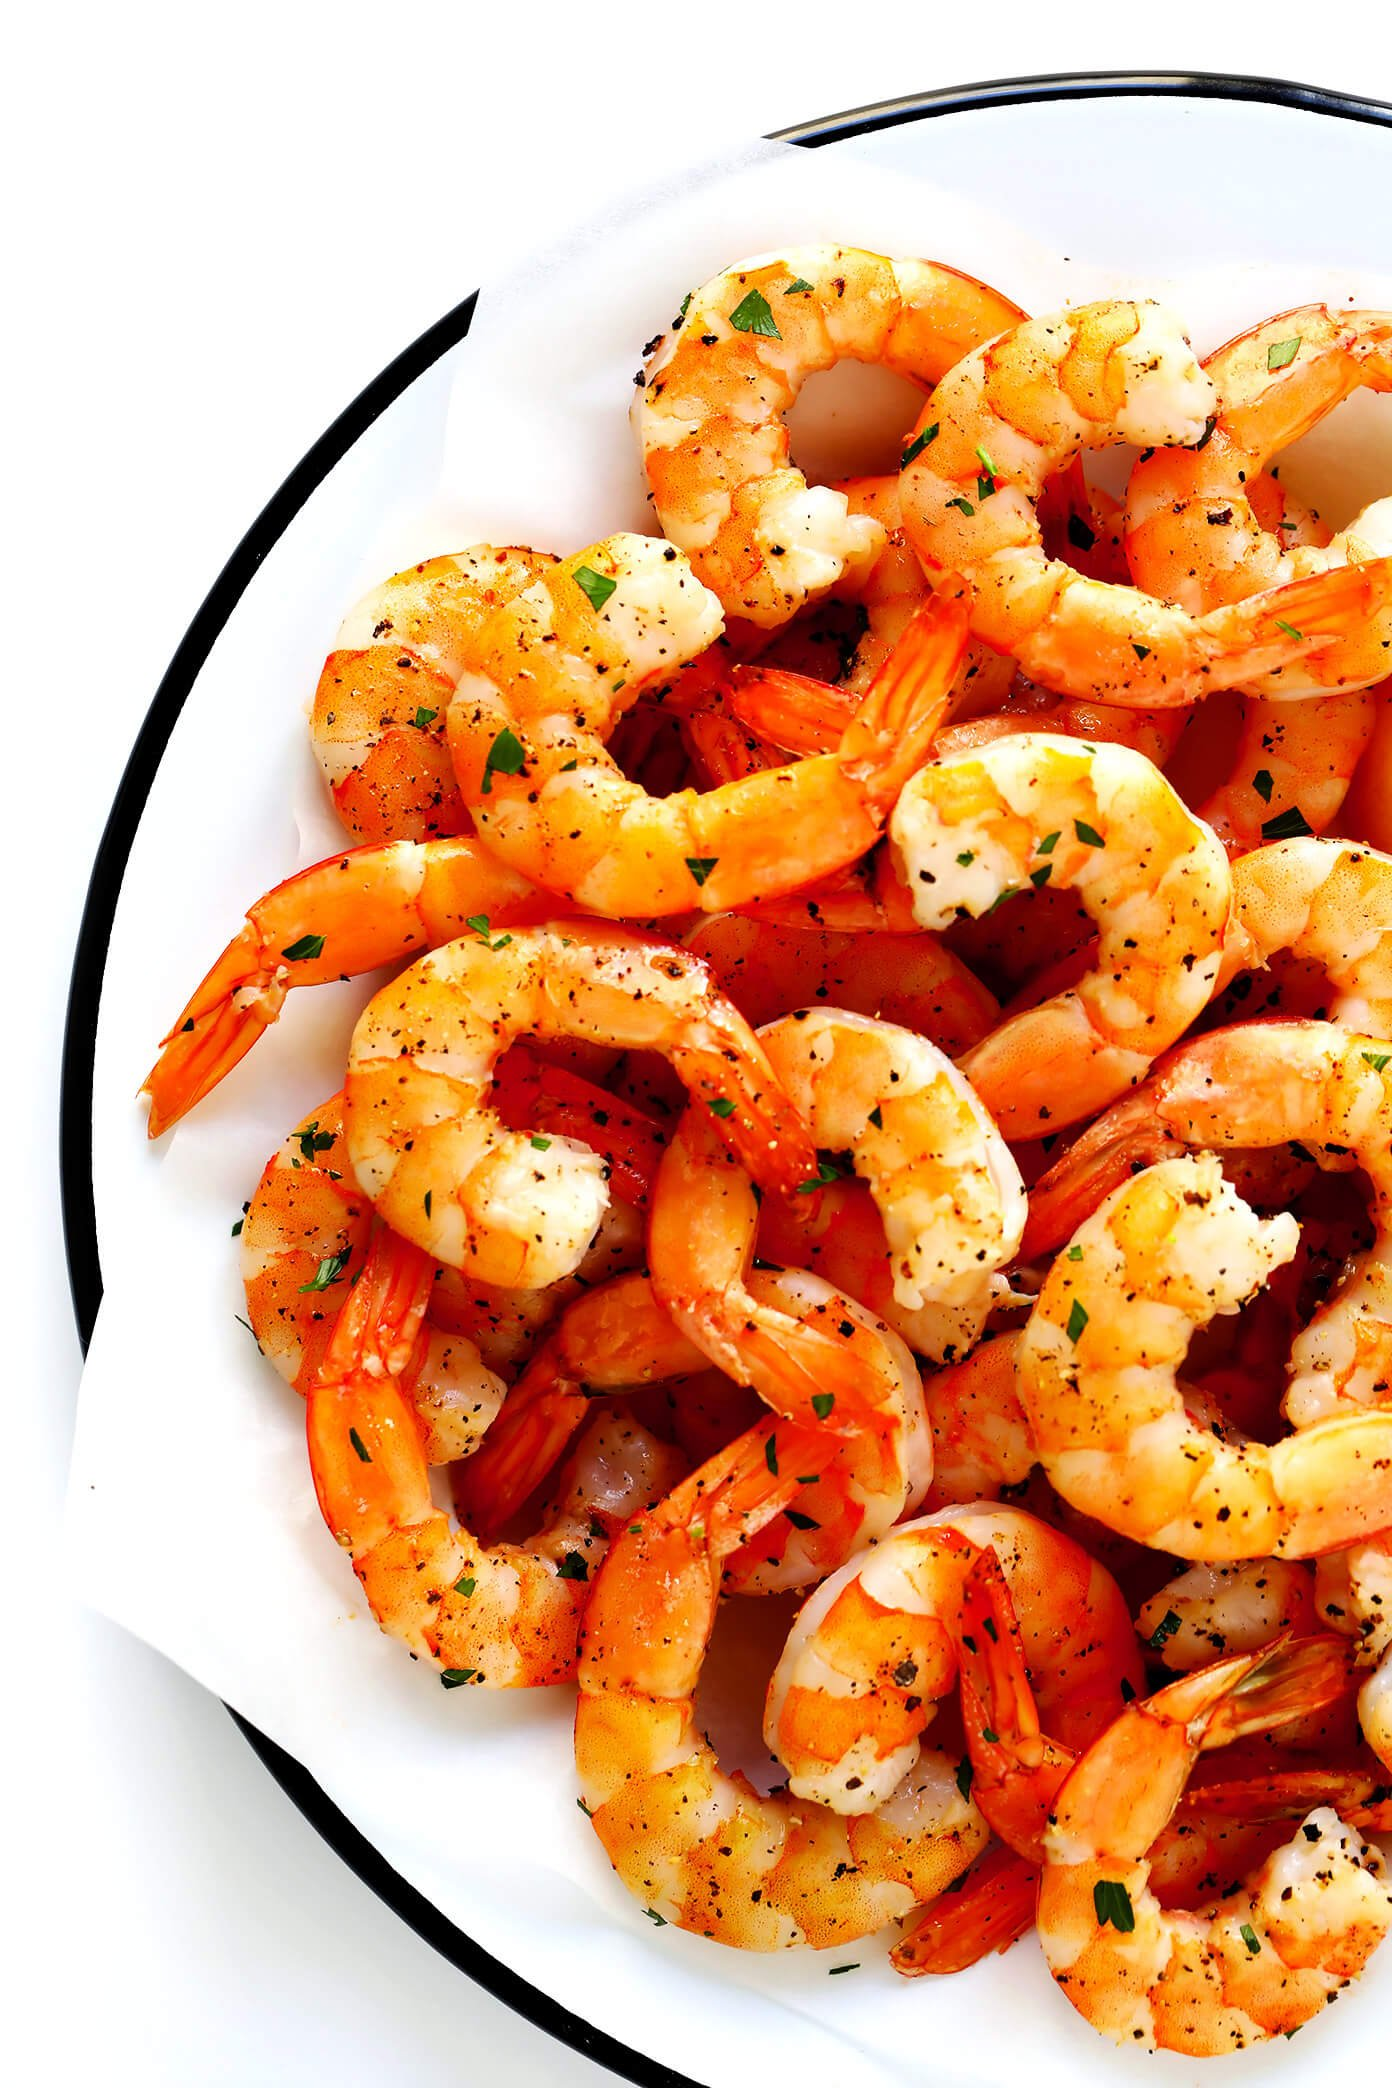 Toss the shrimp in a bowl with 2..